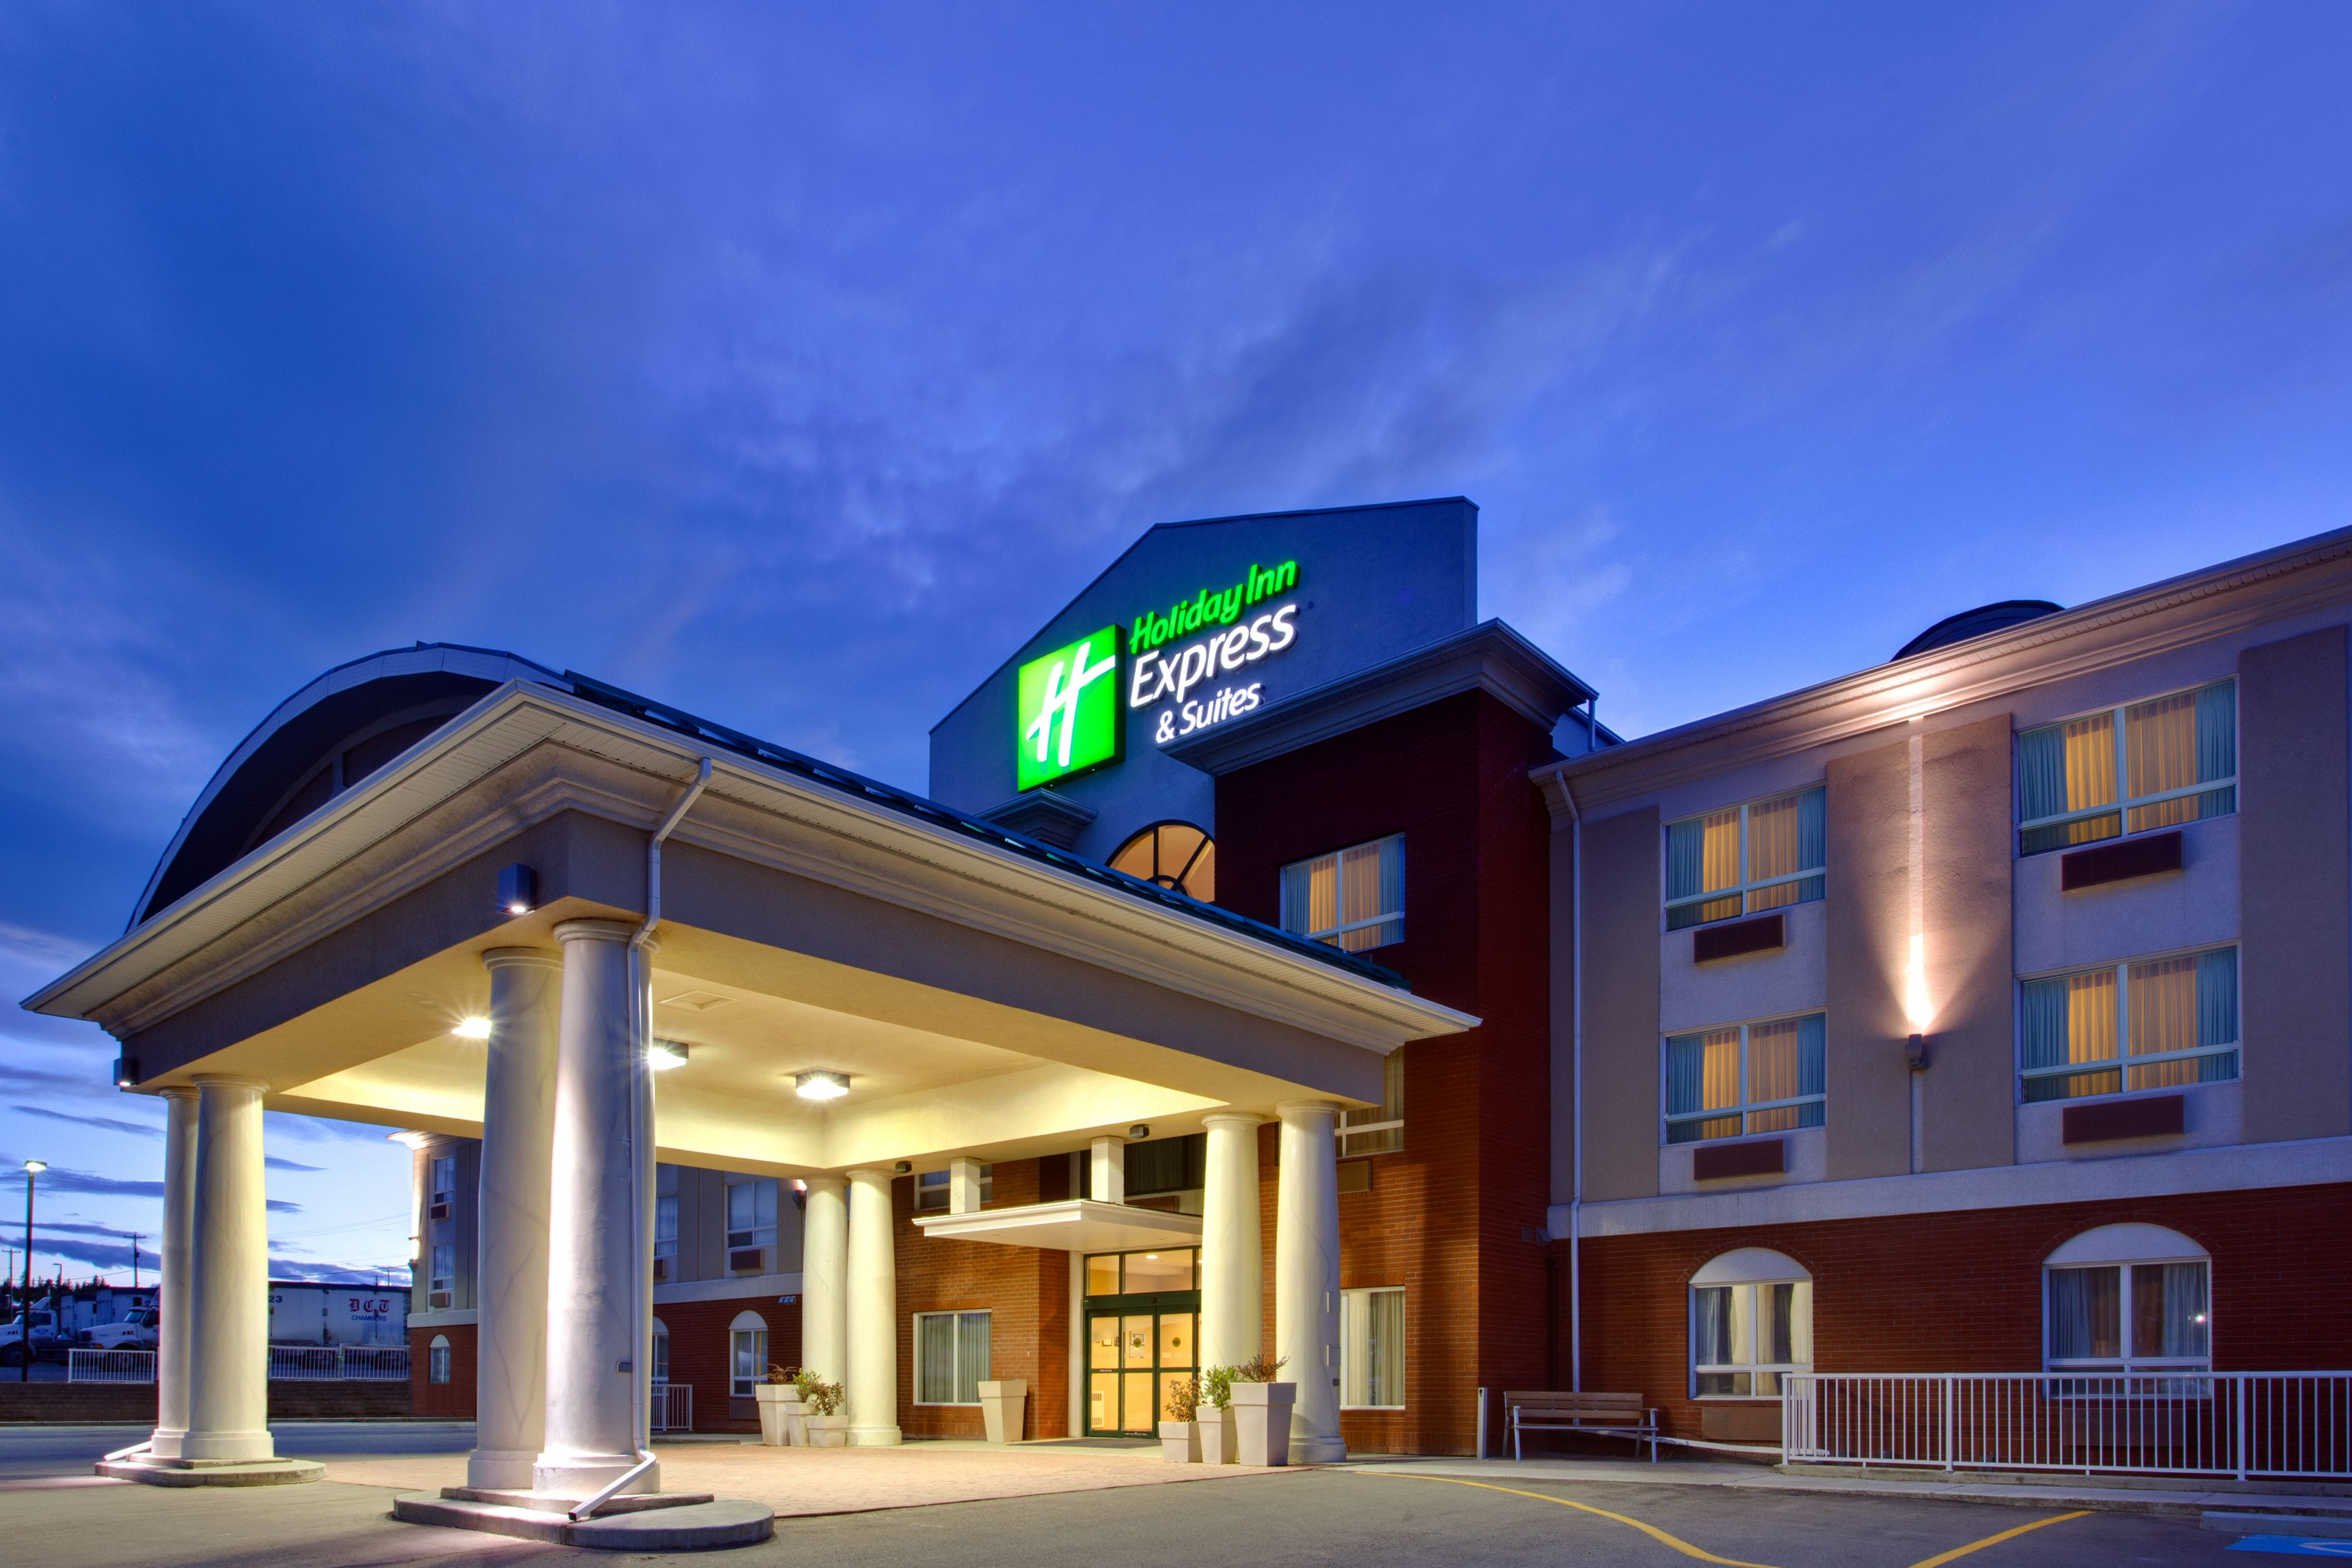 Hotel Deals In Bluffton Sc Doubletree And Spa Napa Valley Specific Travel Hotels Holiday Inn Express Suites Is A